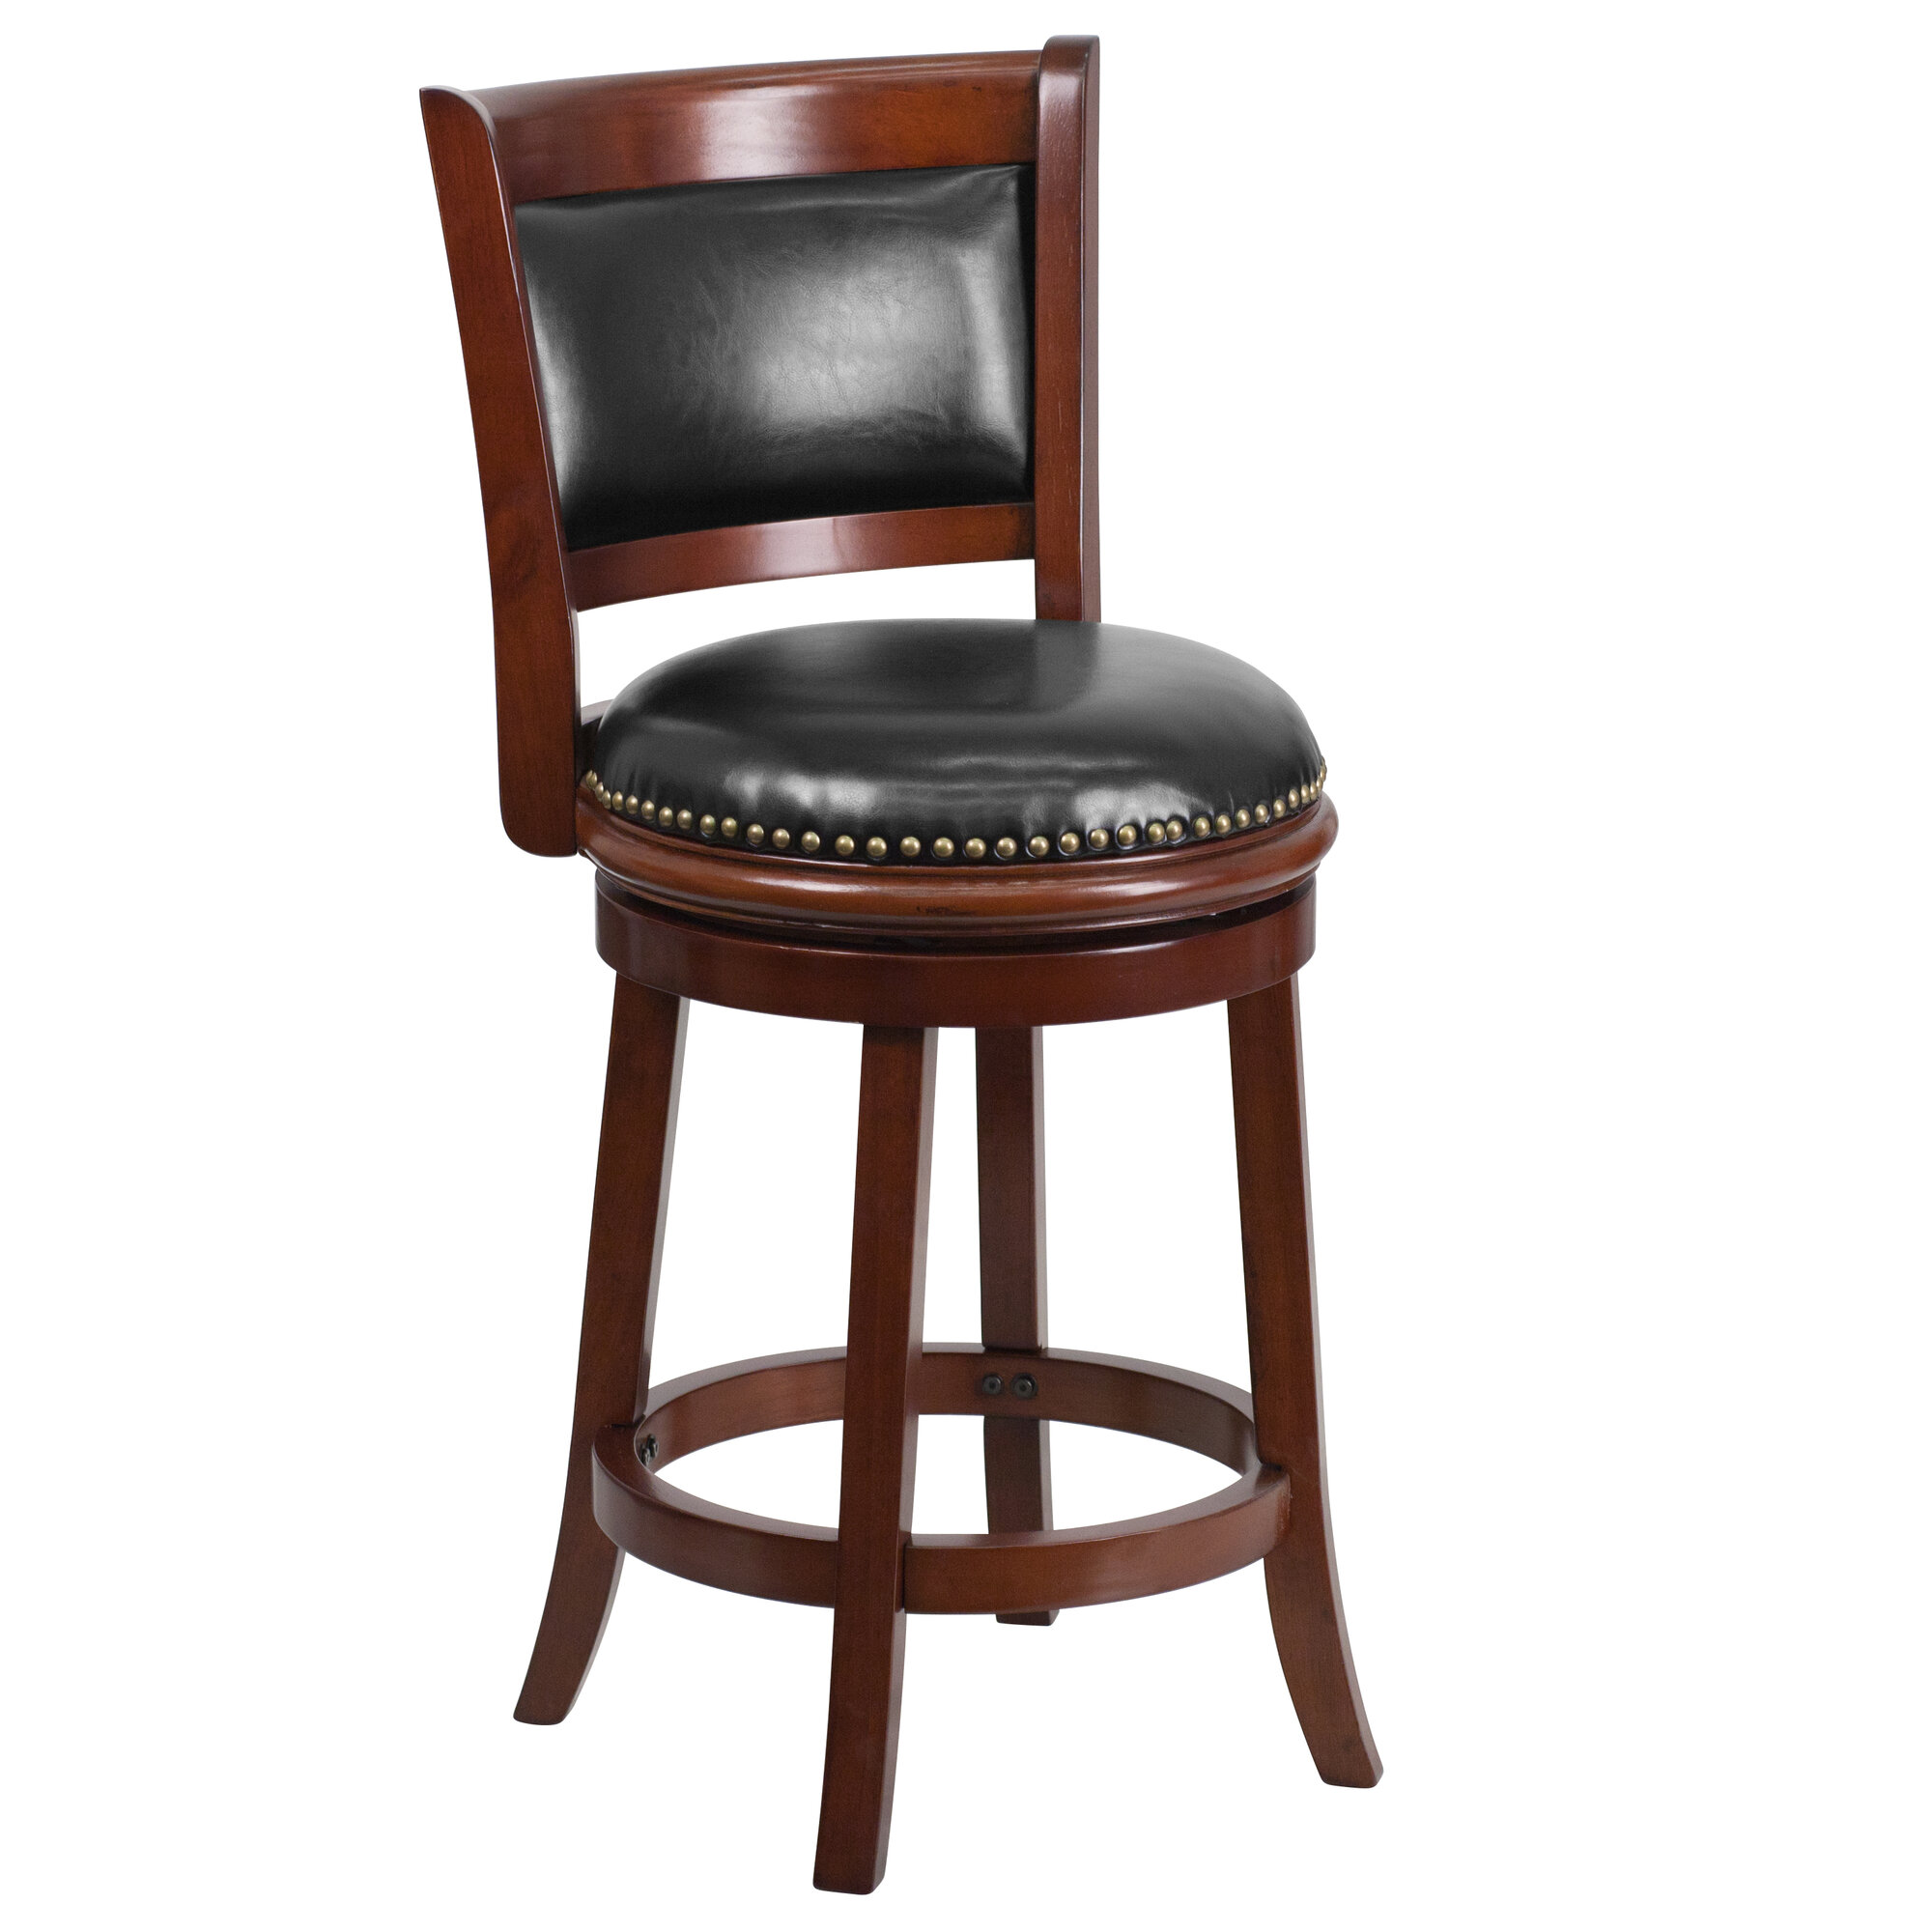 Flash furniture 24 39 39 wood counter stool with leather for Furniture 24